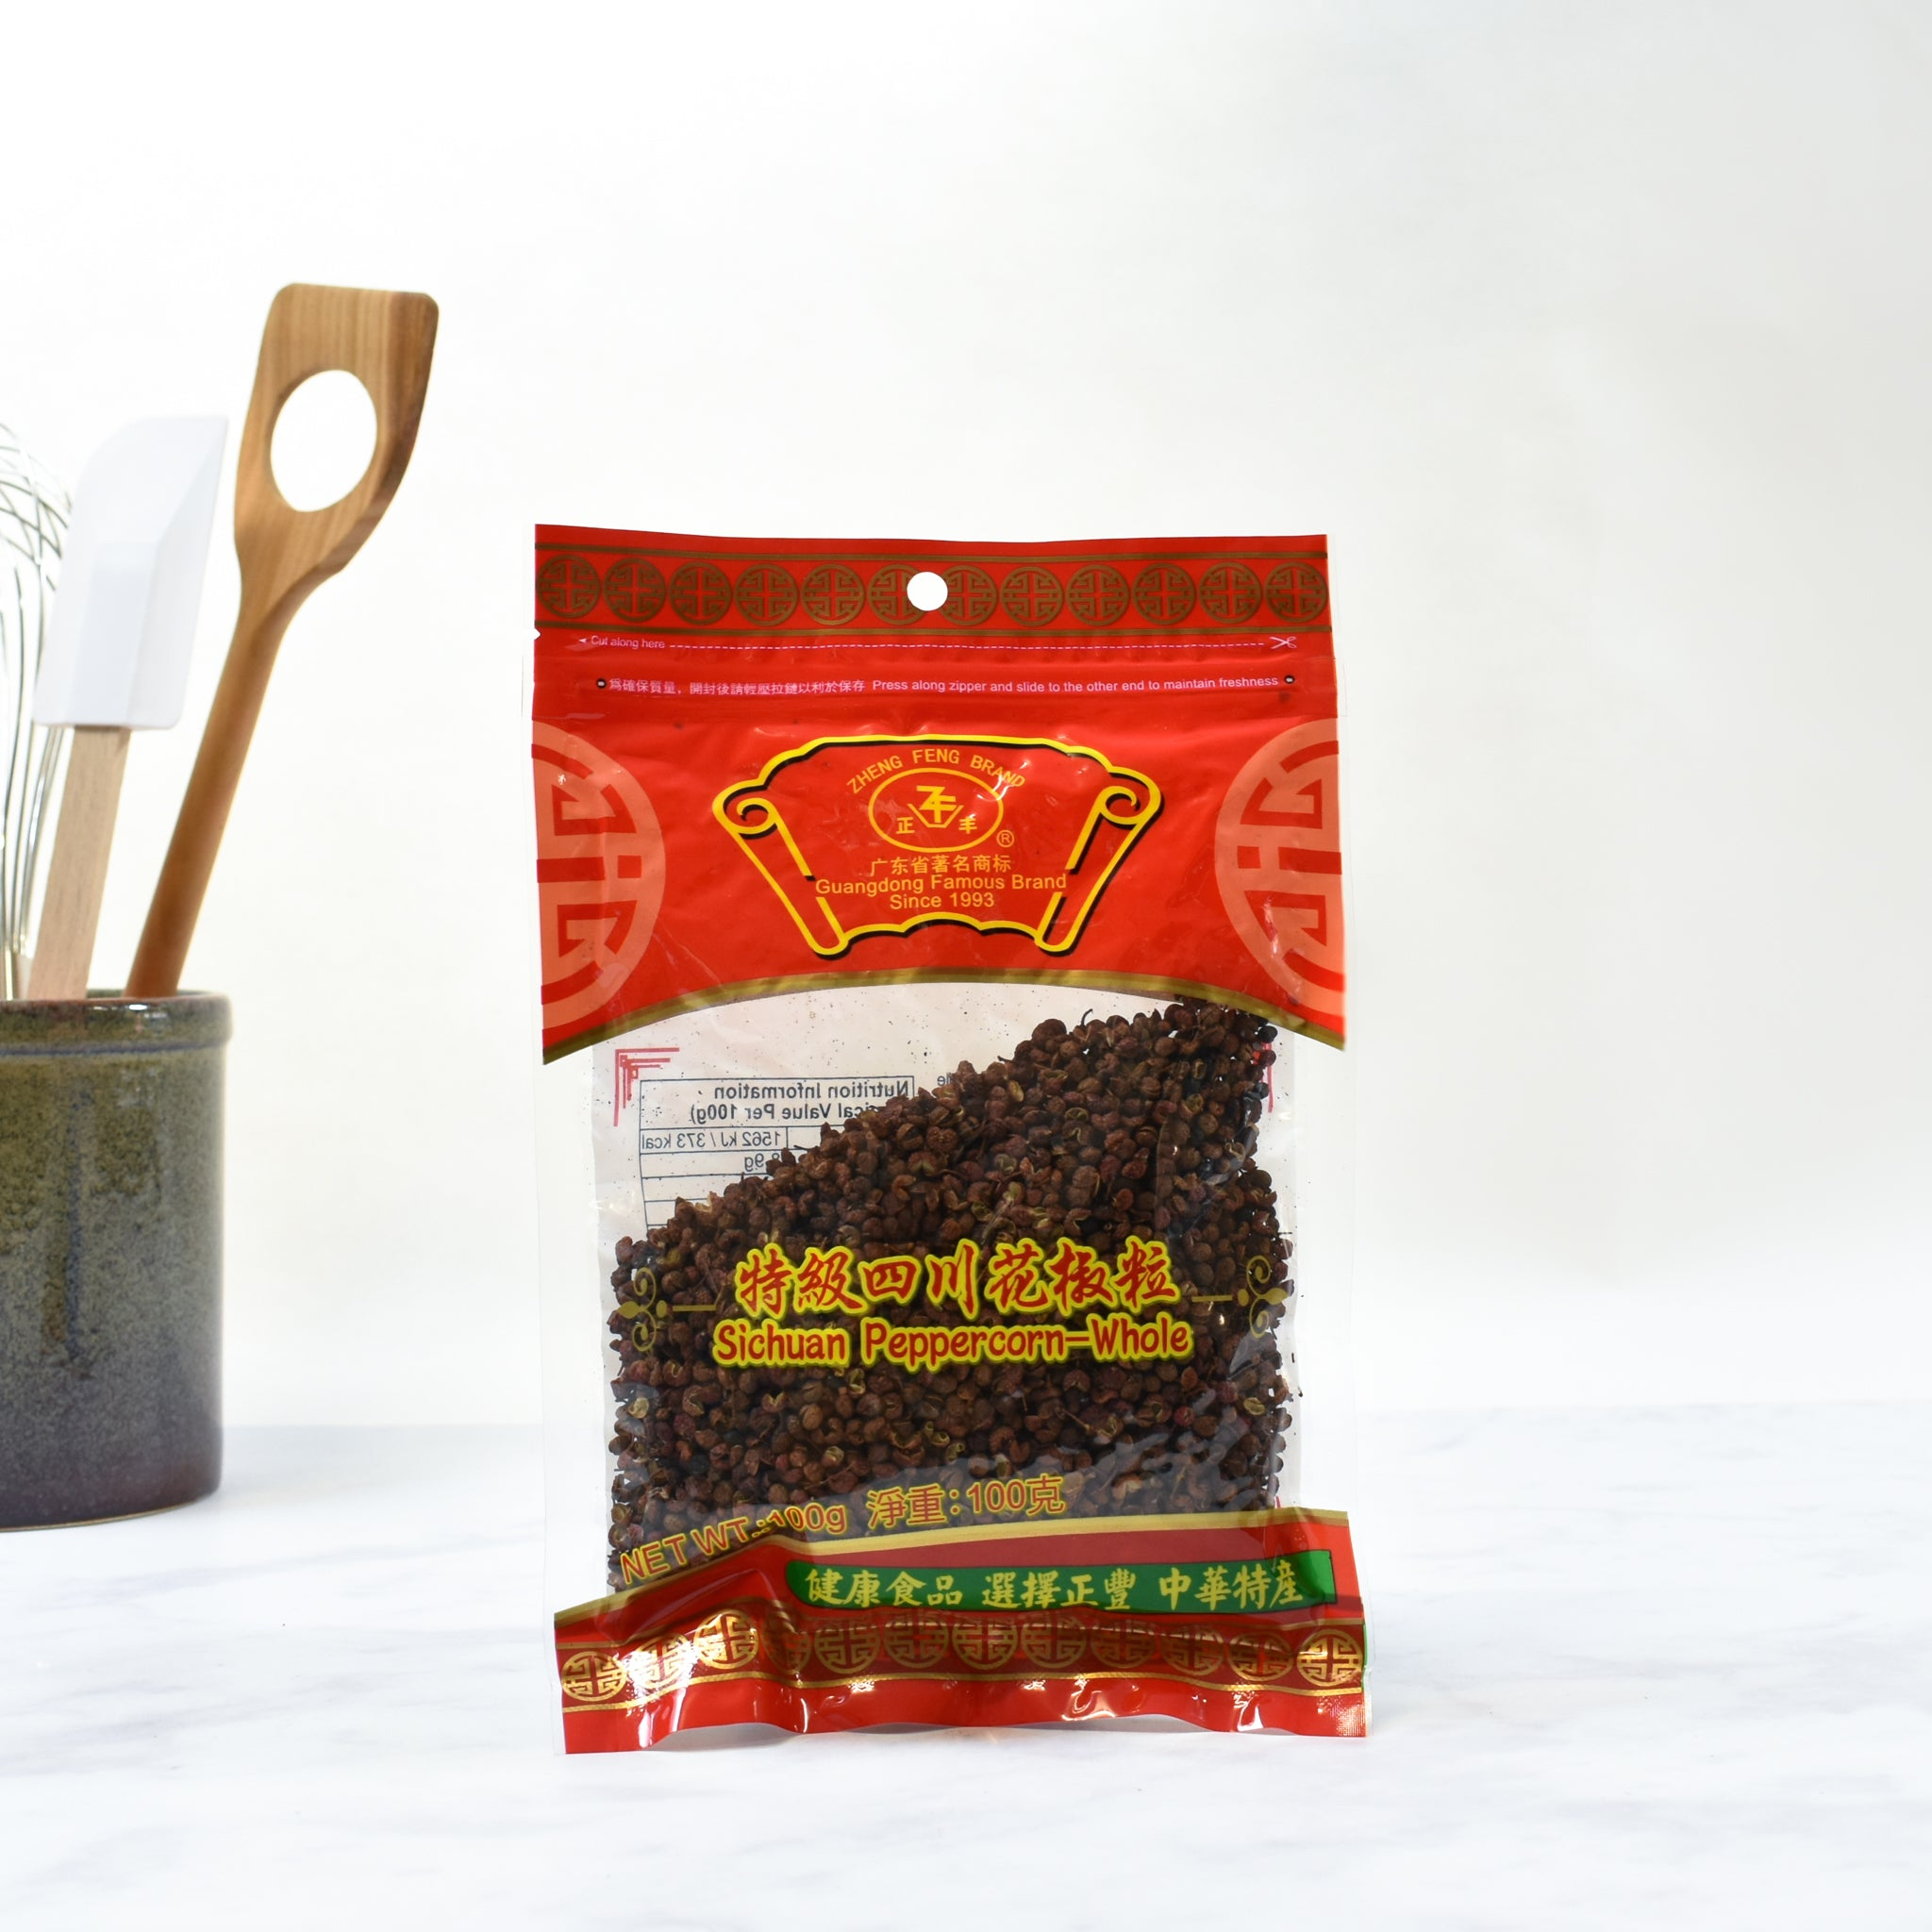 Brotherhood Sichuan Pepper 100g Ingredients Seasonings Chinese Food Lifestyle packaging shot